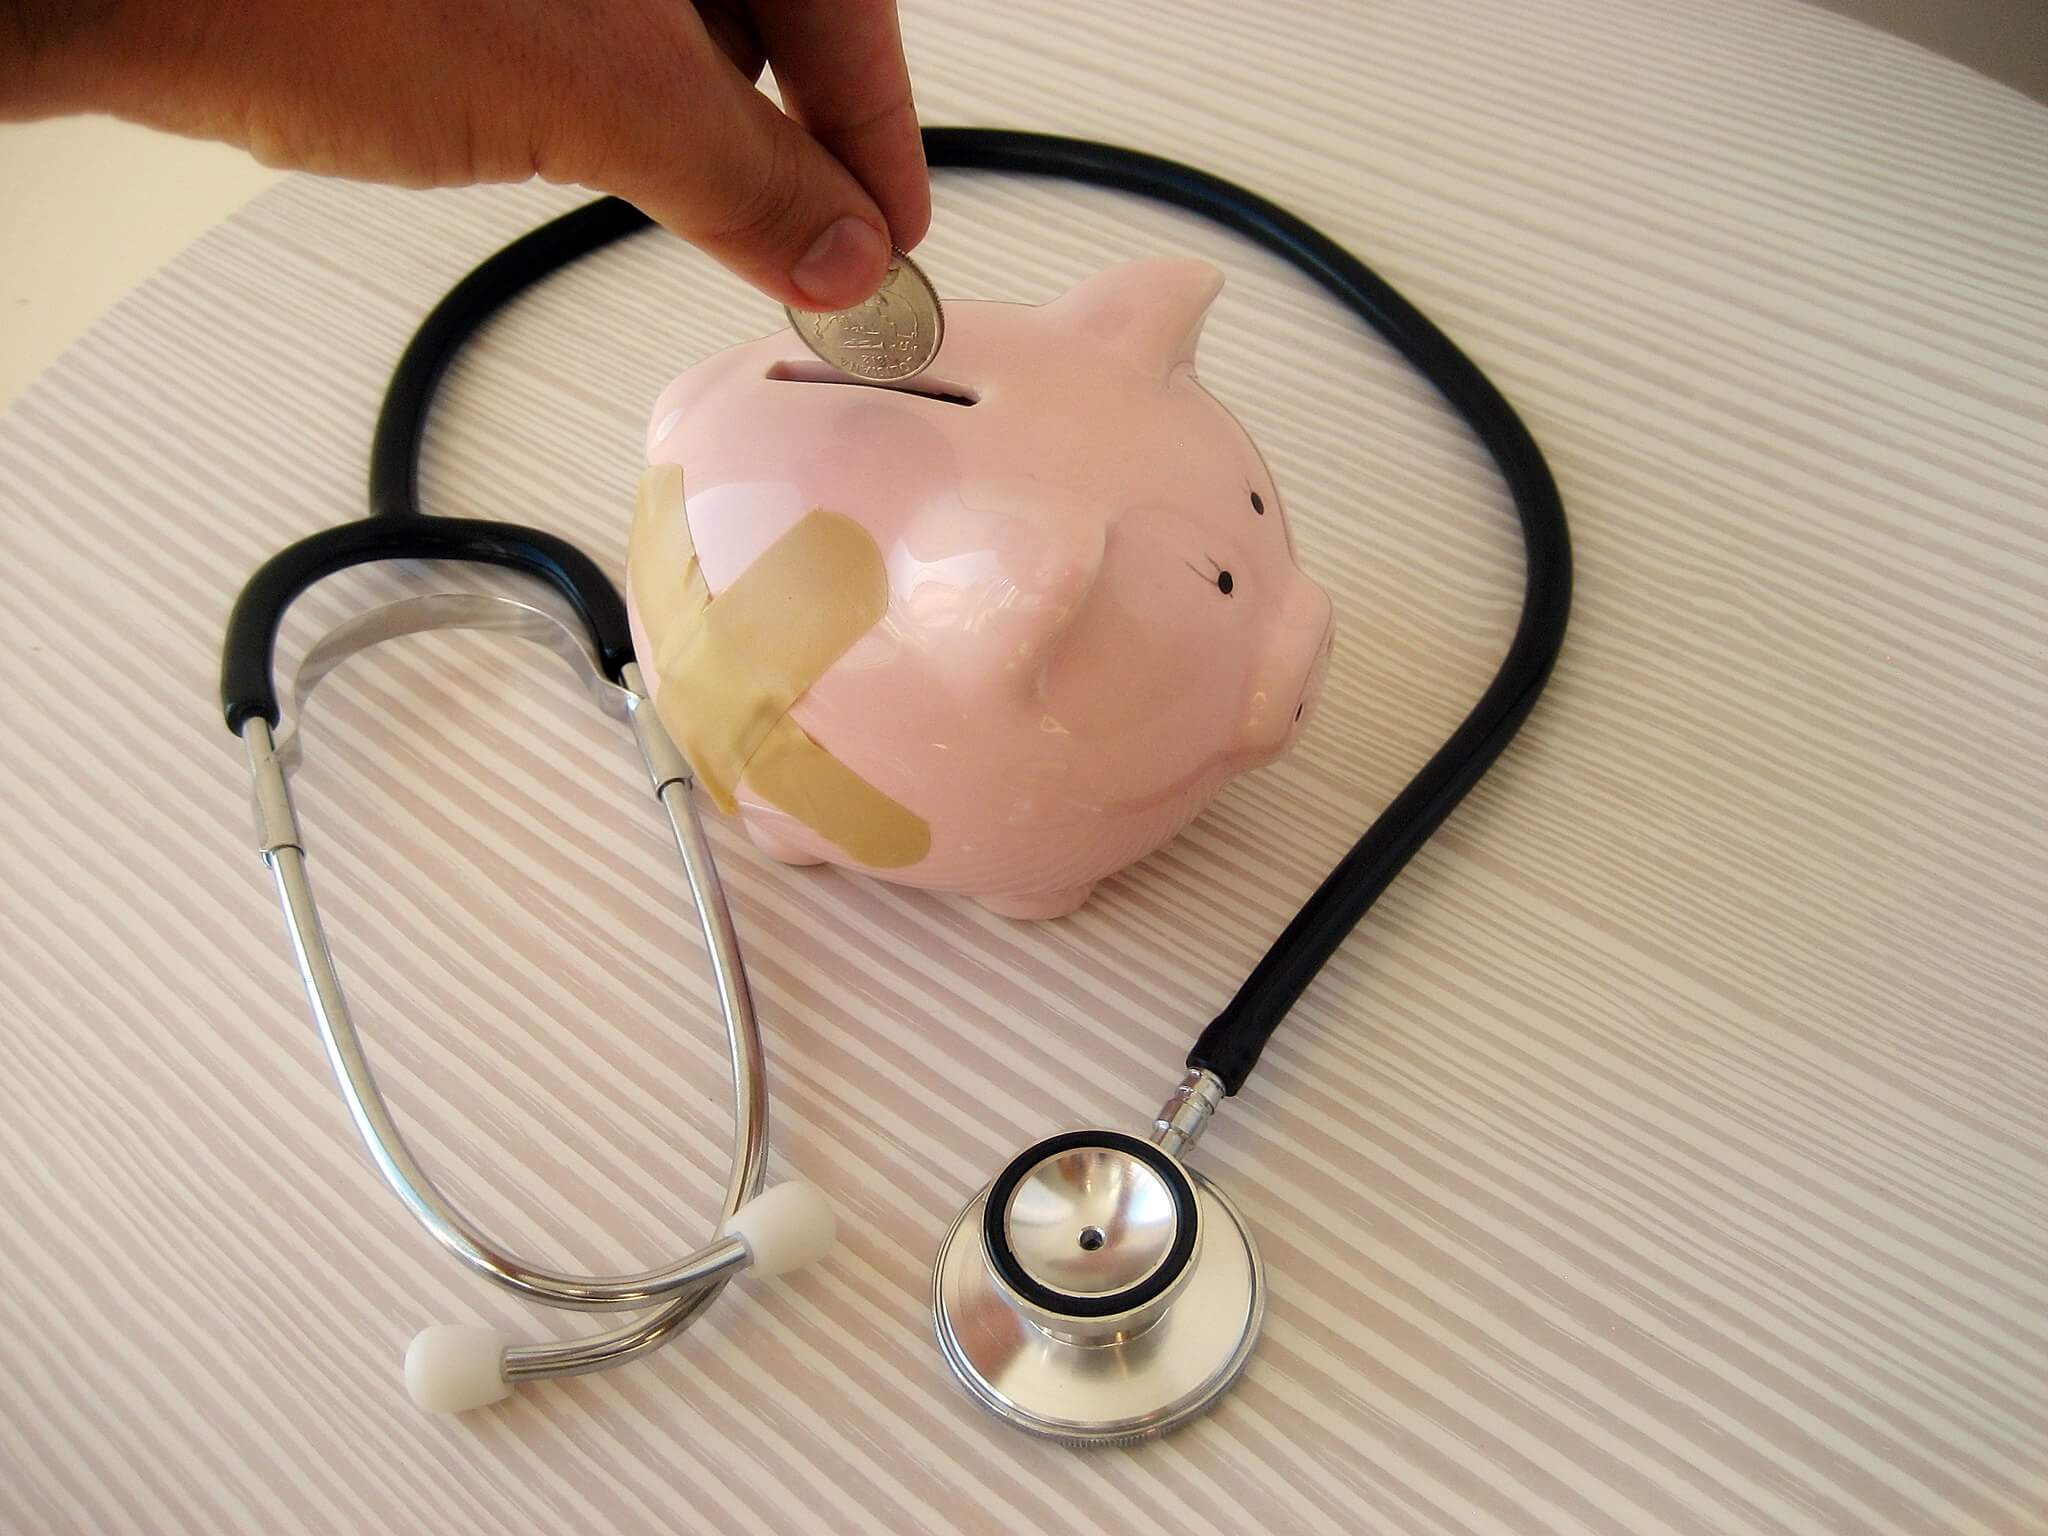 Piggy bank with band aid and a stethoscope around it